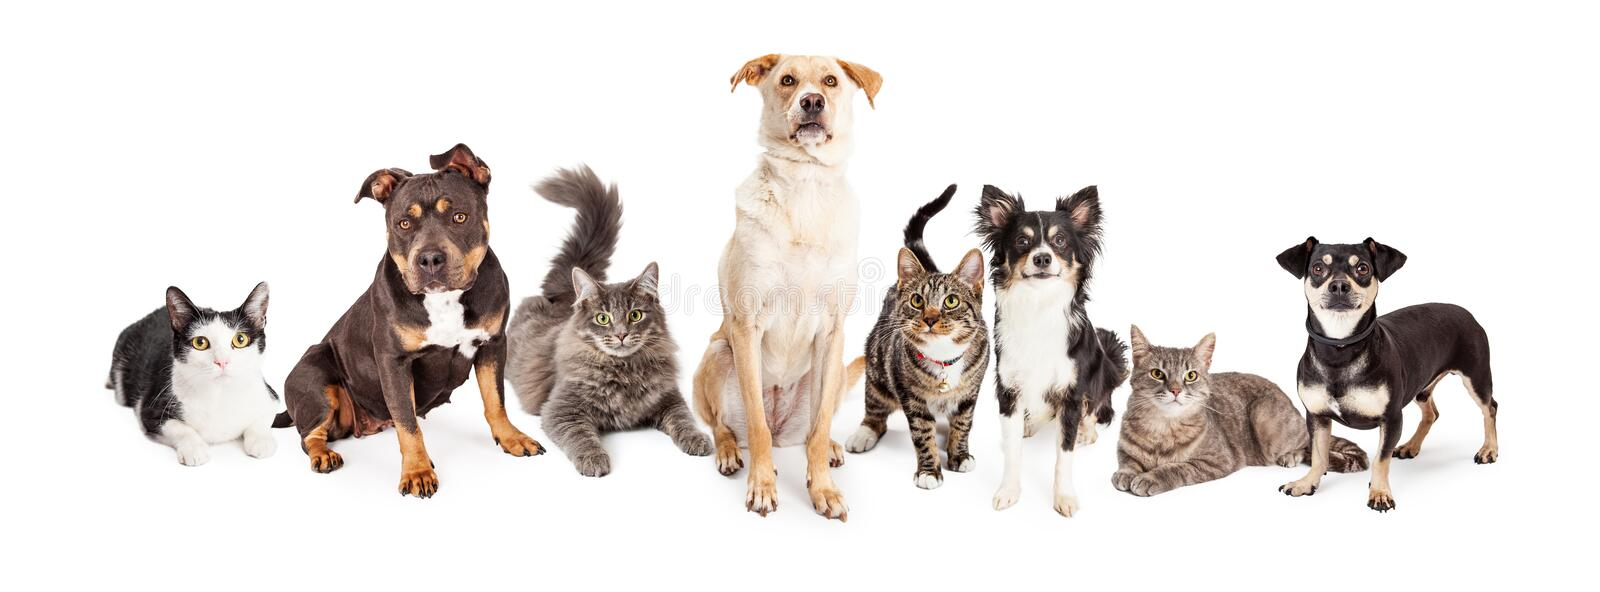 Large Group of Cats and Dogs Together. Group of cats and dogs of different sizes and breeds together. on white royalty free stock images